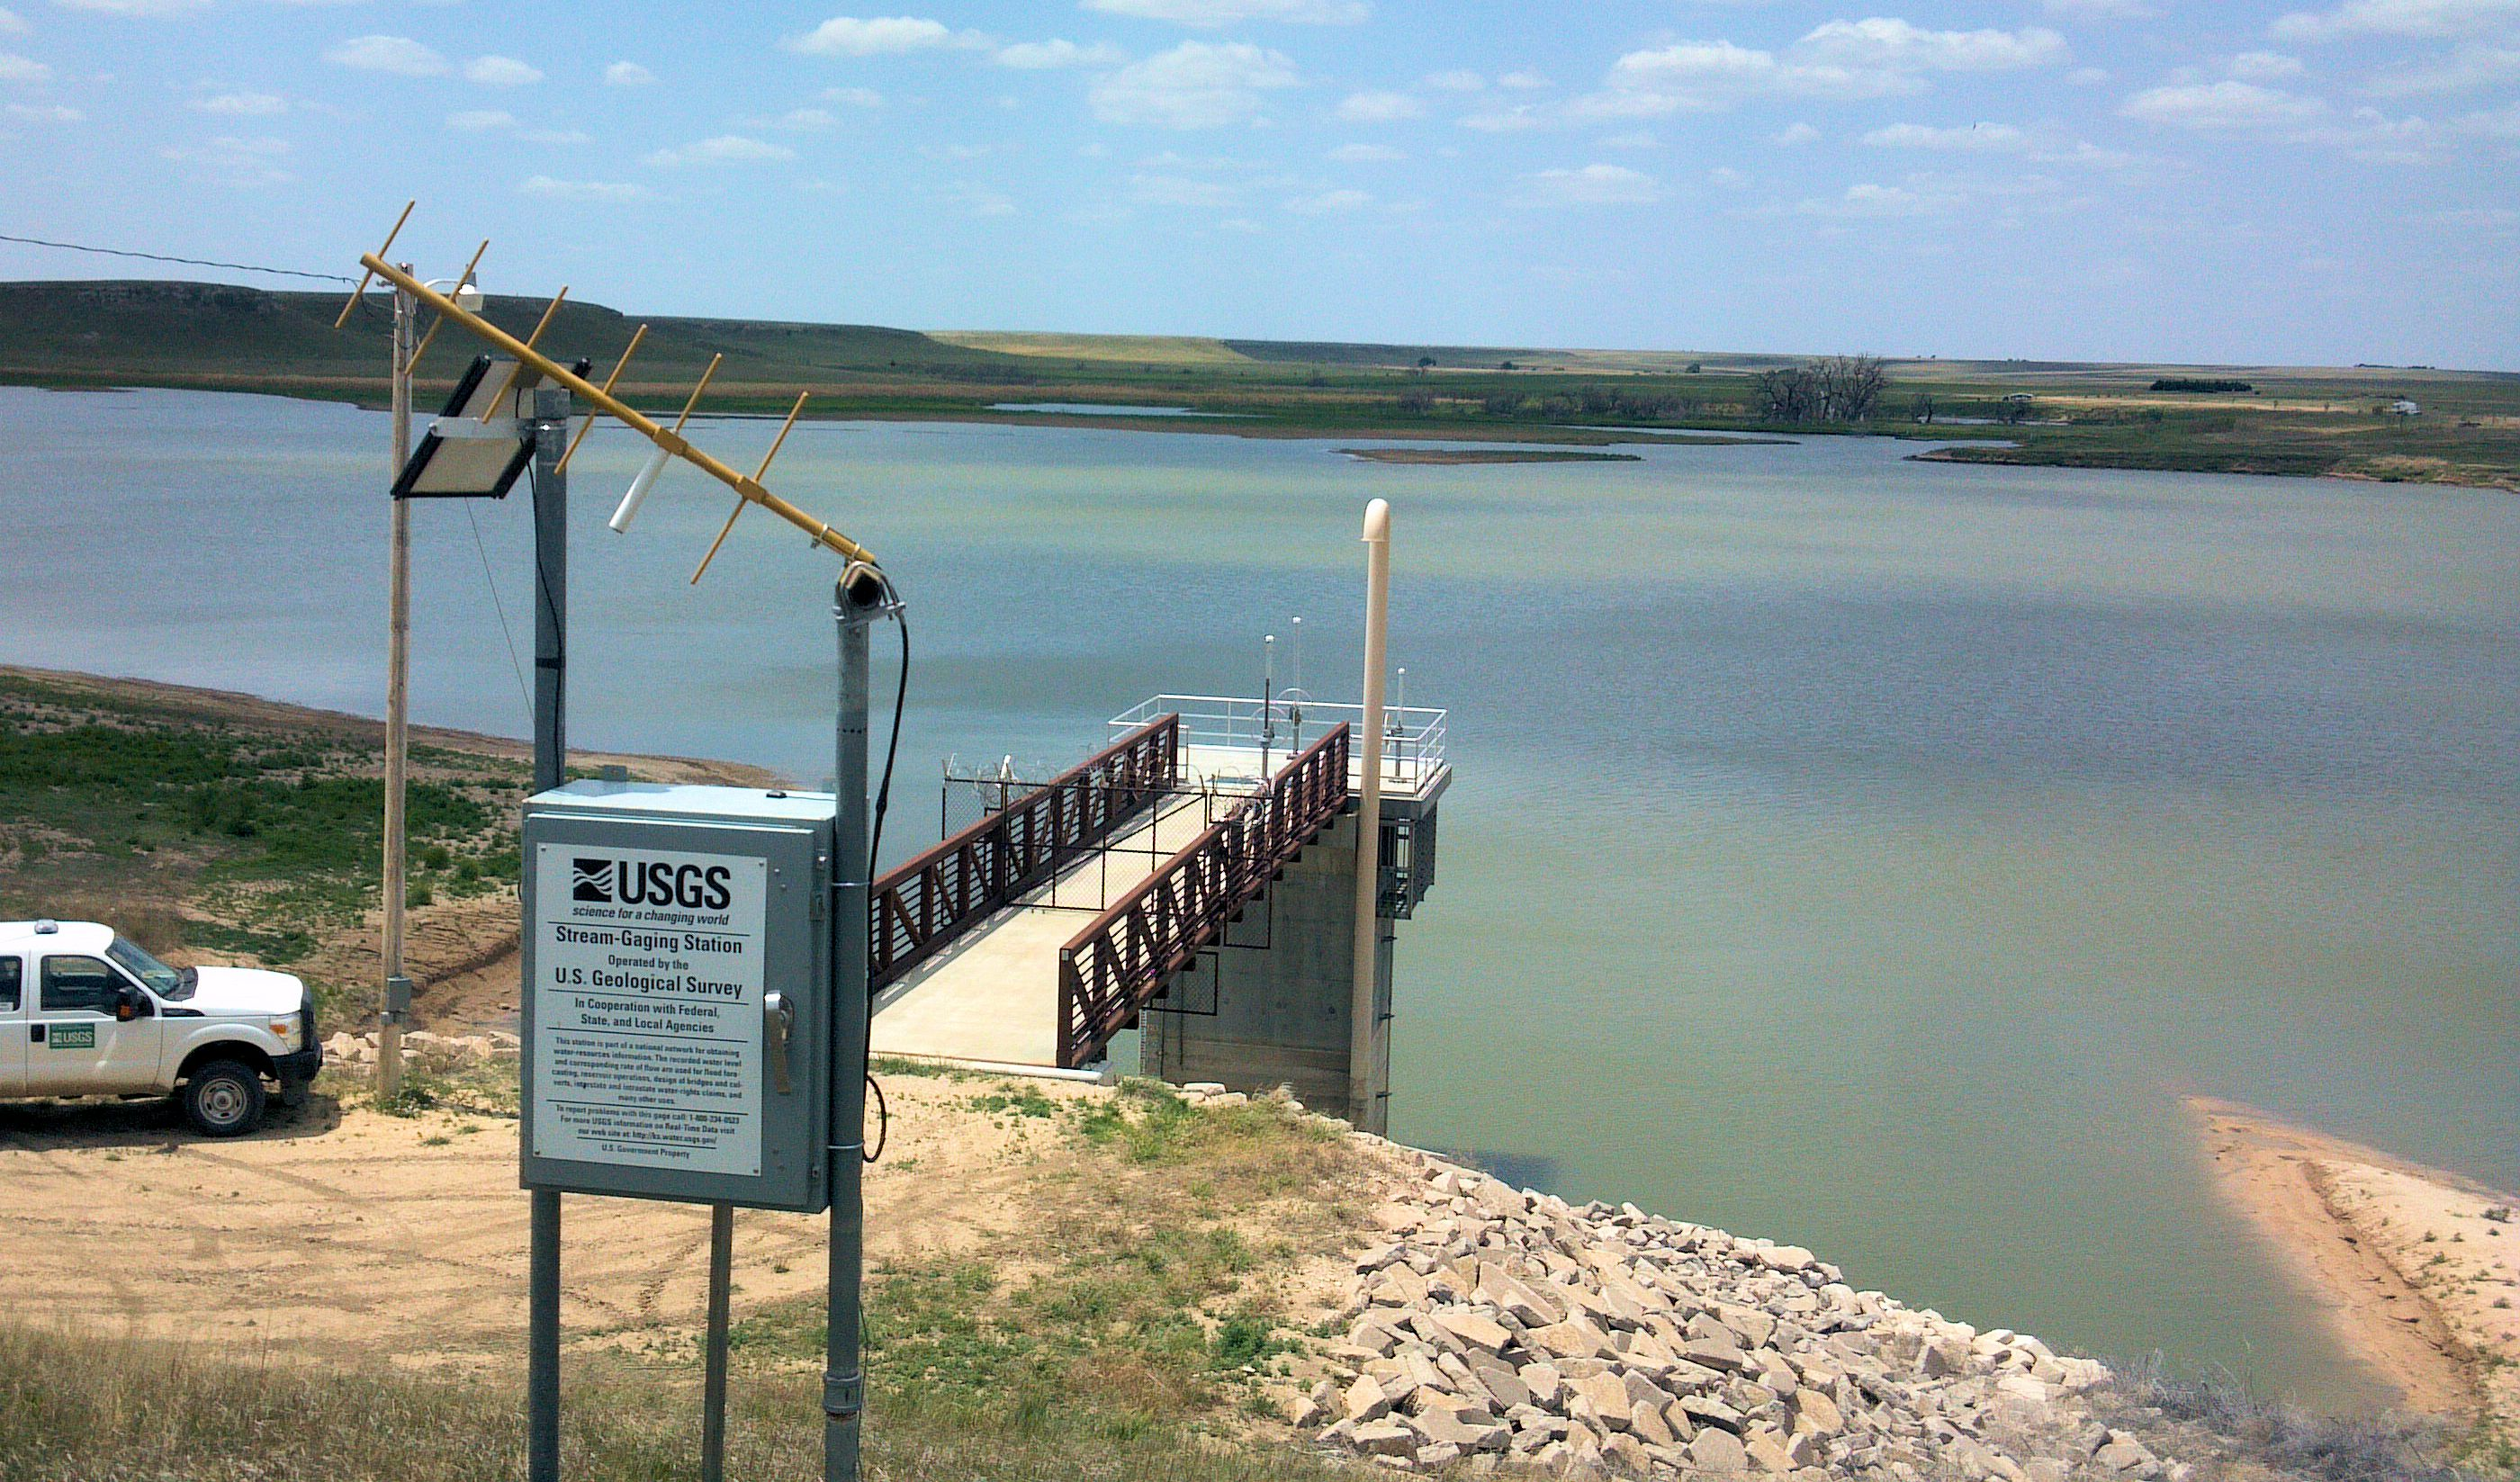 Gage at Horsethief Reservoir near Jetmore, KS on June 4, 2013. Photo by Andrew Clark, USGS.